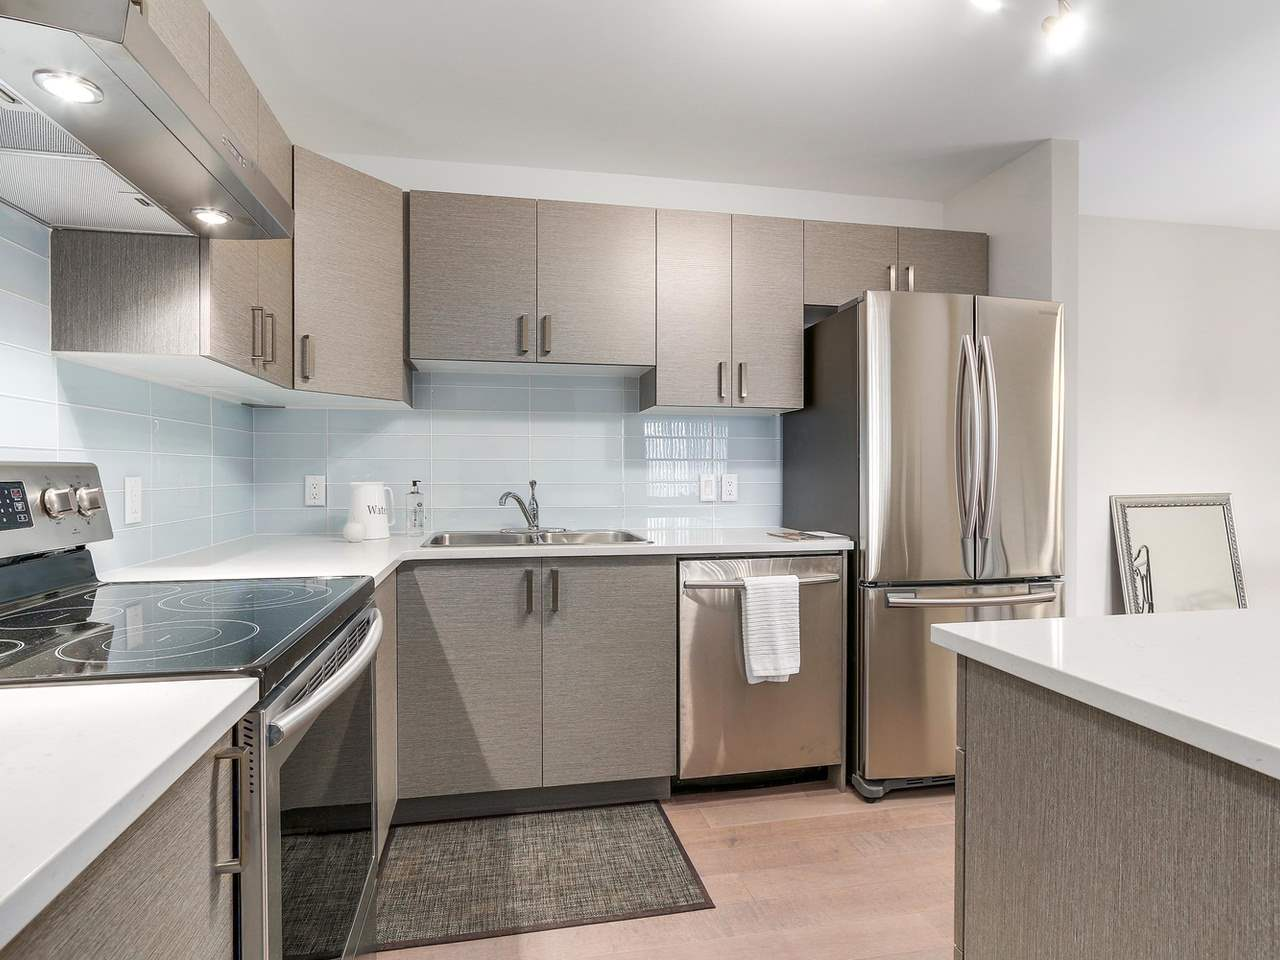 "Photo 9: 603 550 EIGHTH Street in New Westminster: Uptown NW Condo for sale in ""PARK RIDGE"" : MLS(r) # R2142092"